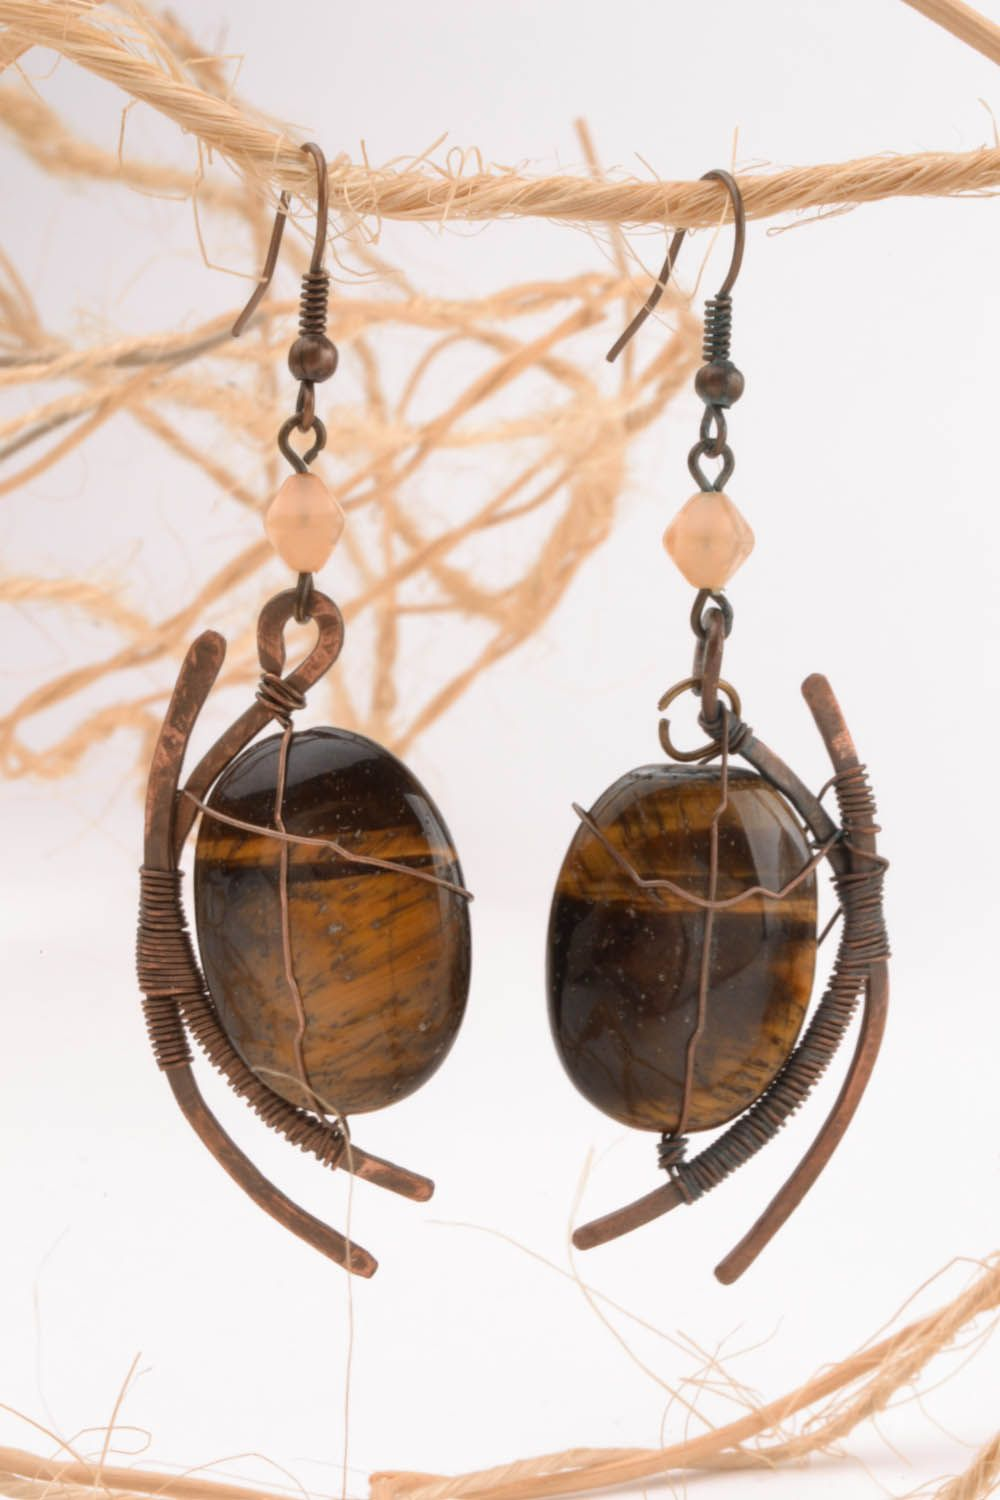 Copper earrings with tiger's eye stone photo 5